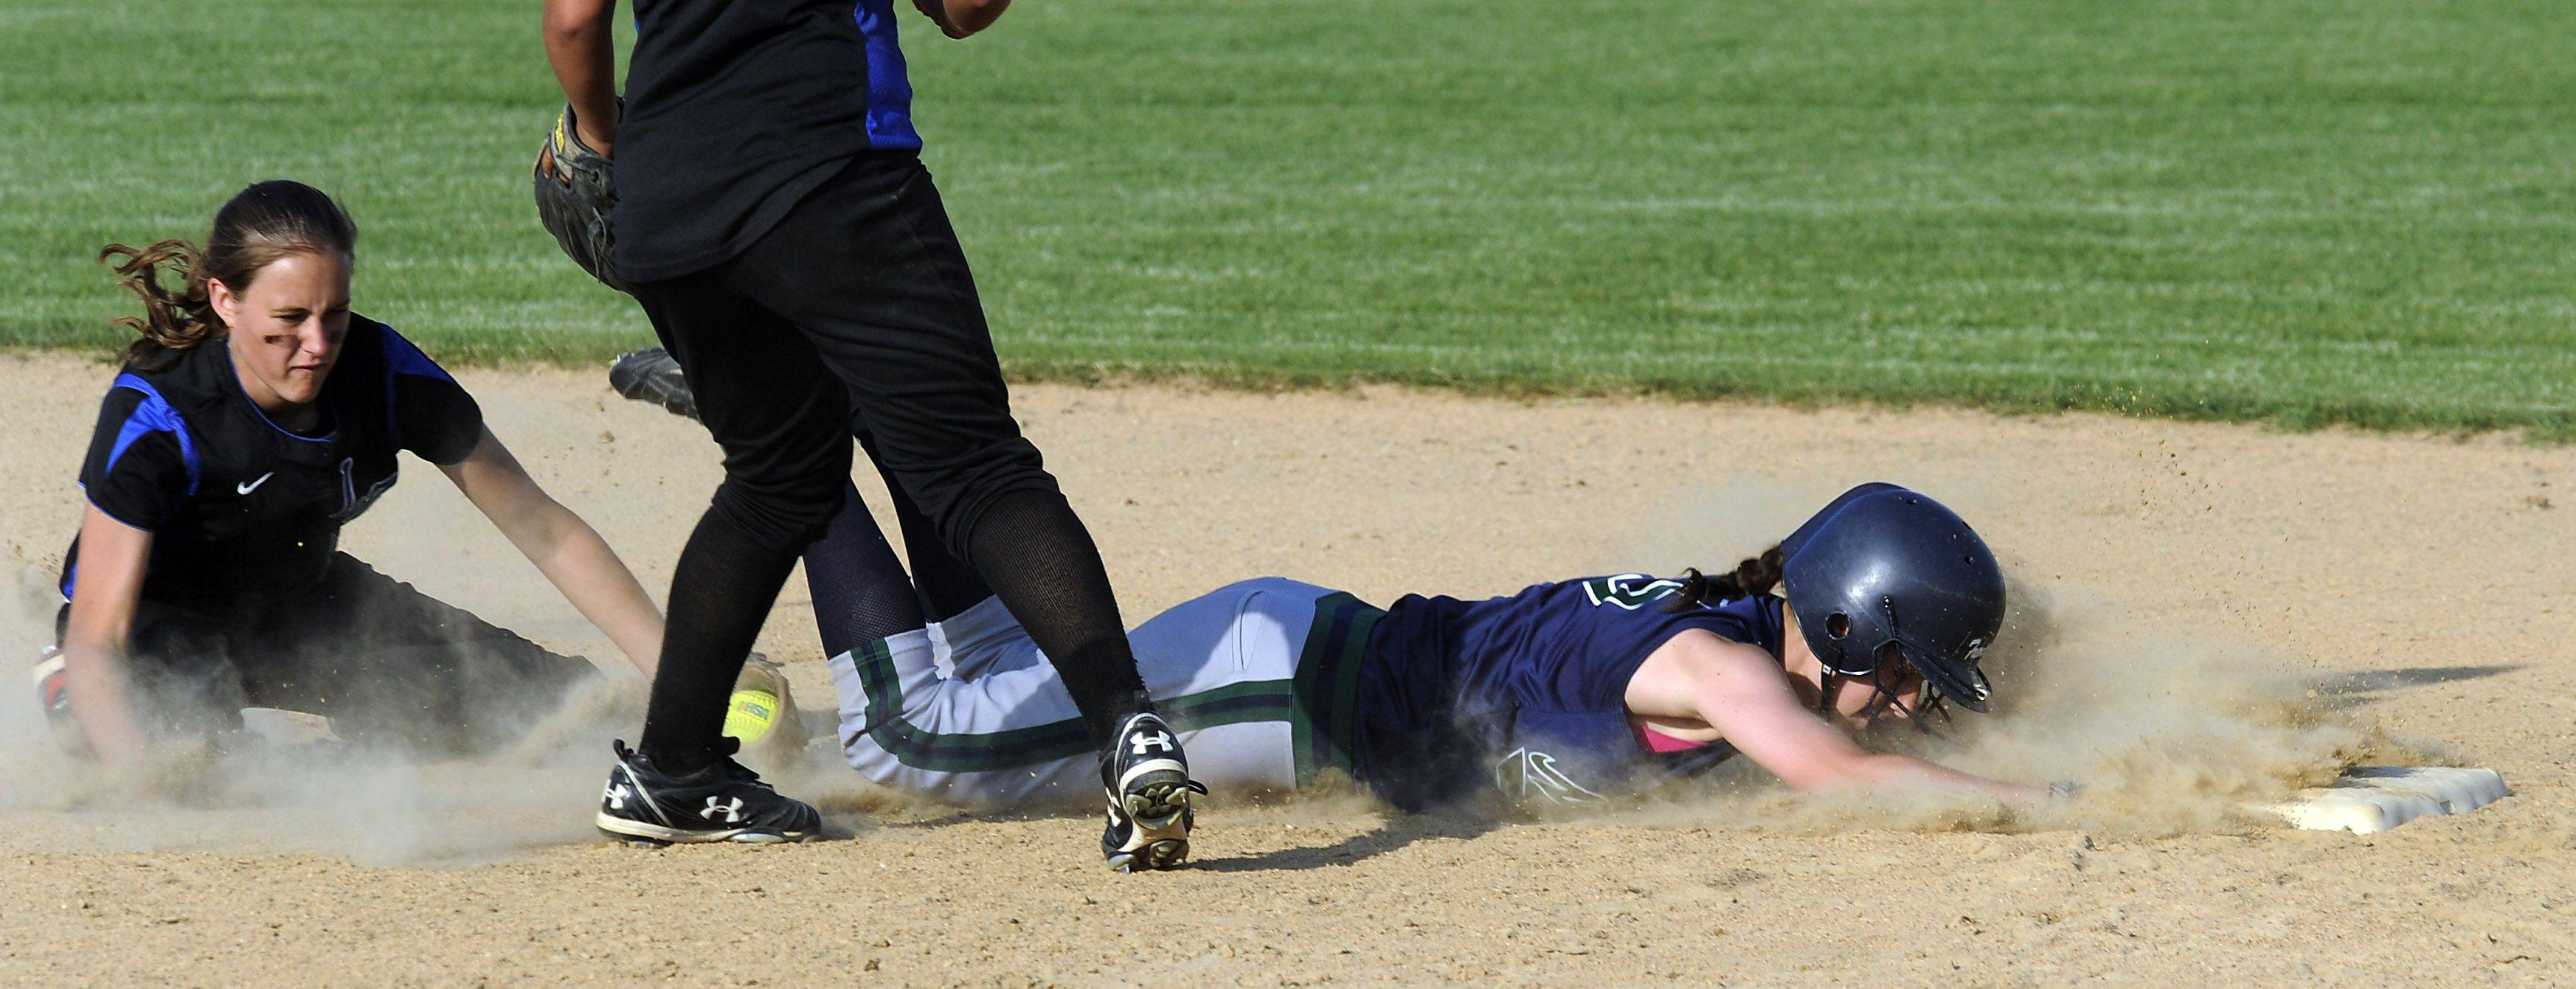 Lake Zurich's shortstop Tabbetha Bohac puts the tag on New Trier's Jessica Tetzlaff after she over-ran second base in the sixth inning in this strong defensive play in the Class 4A Glenbrook South softball supersectional title game on Monday.